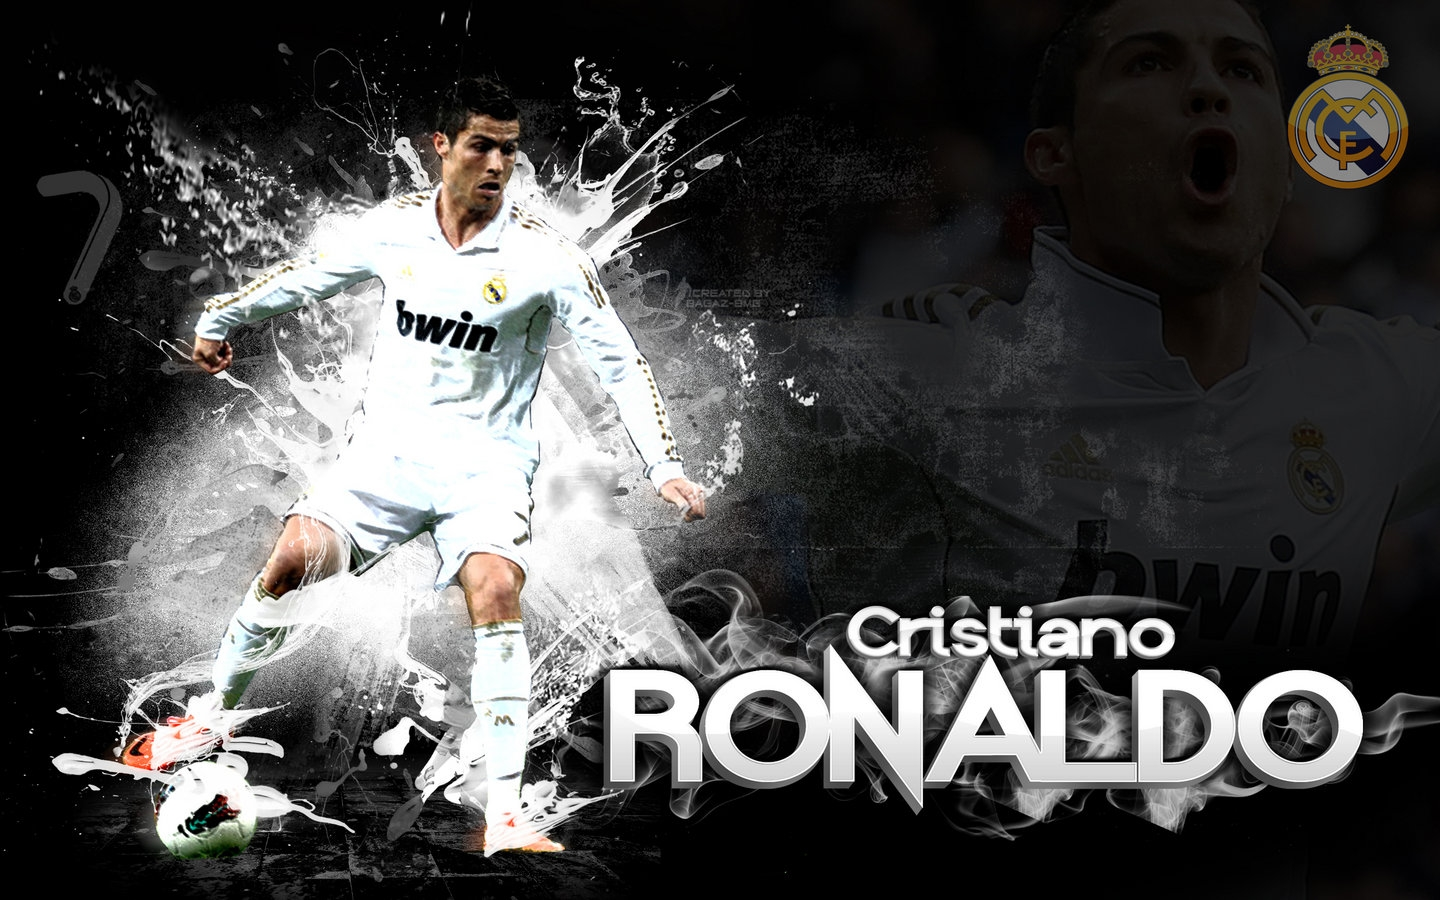 Free Download Ronaldo 7 Abstract Picture Celebrating After Goal Cristiano Ronaldo 1440x900 For Your Desktop Mobile Tablet Explore 46 Cristiano Ronaldo Celebration Wallpaper Cristiano Ronaldo Celebration Wallpaper Cristiano Ronaldo